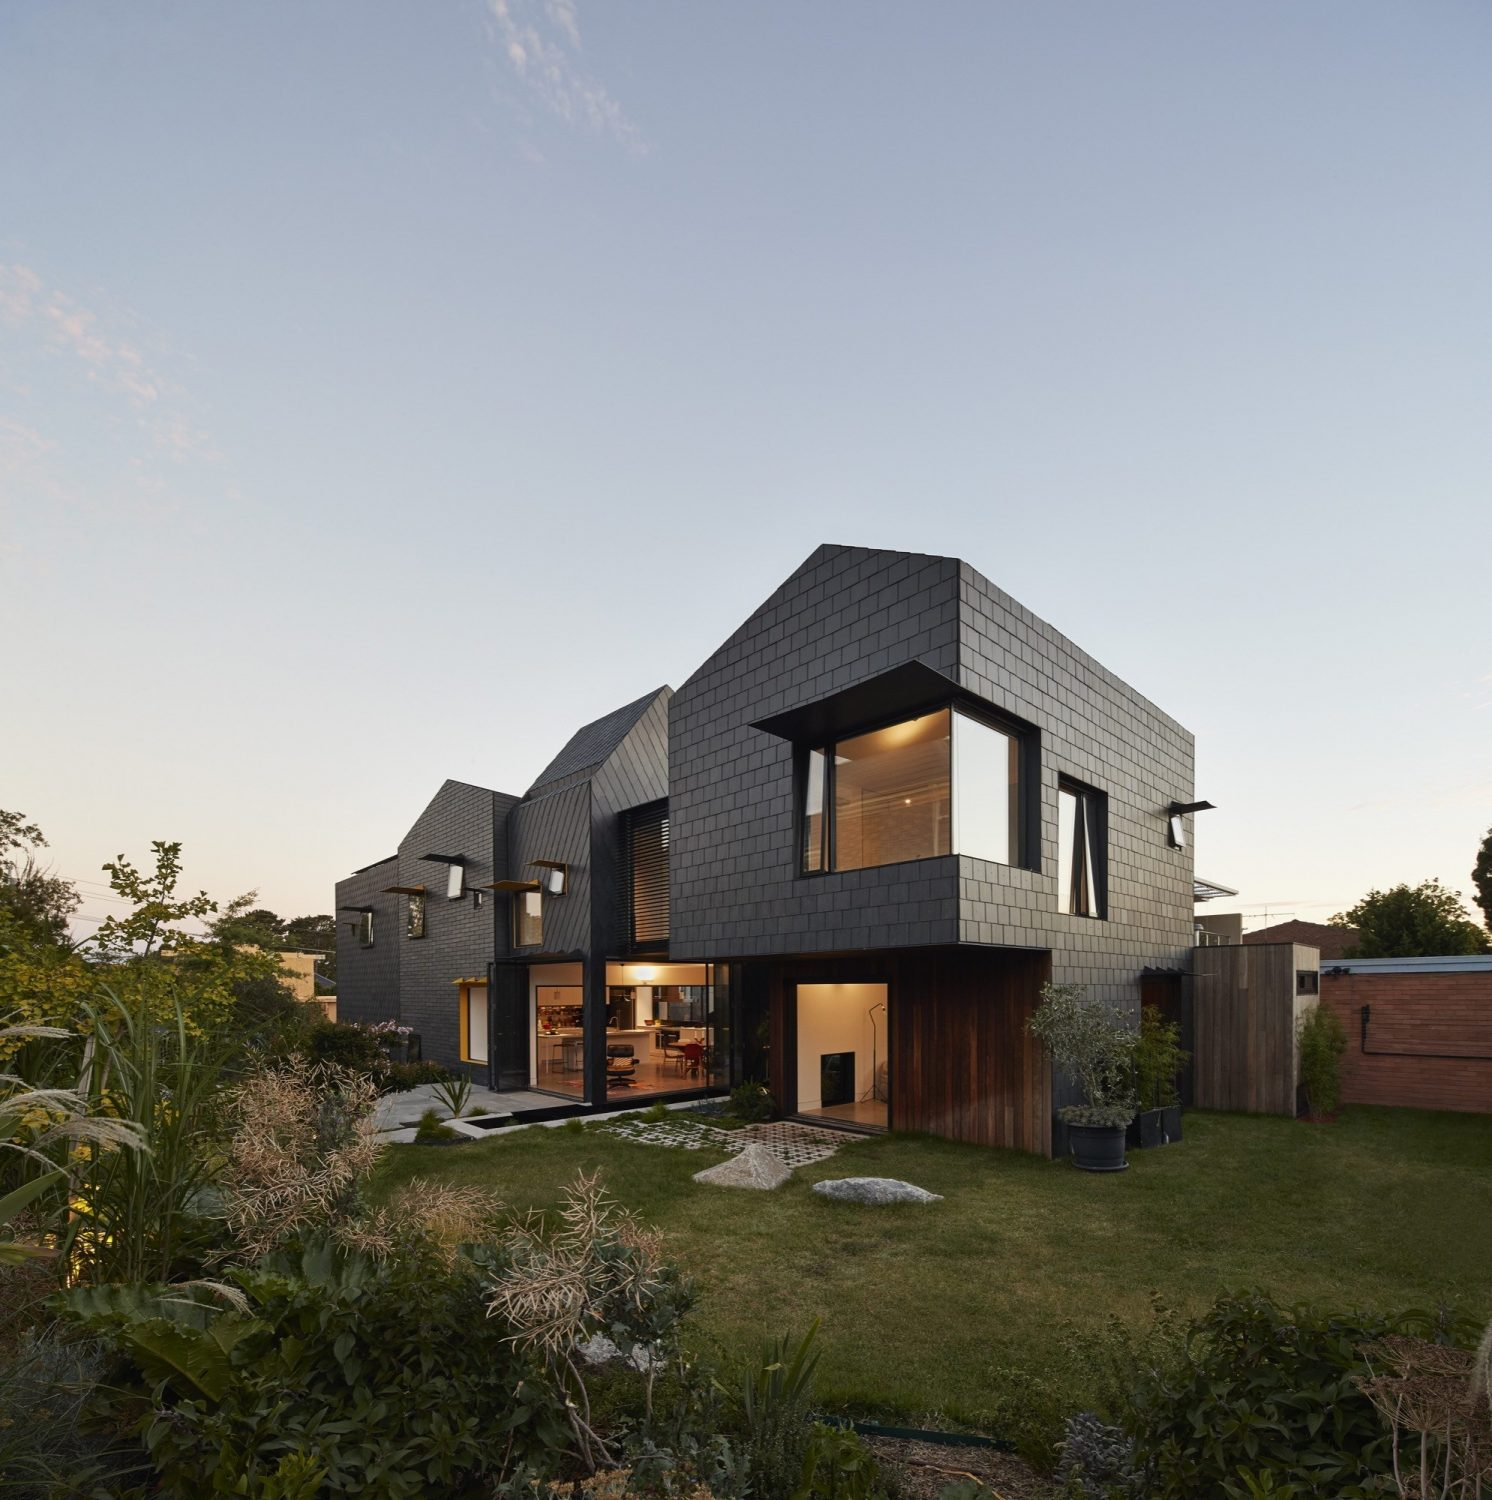 Charles House by Austin Maynard Architects